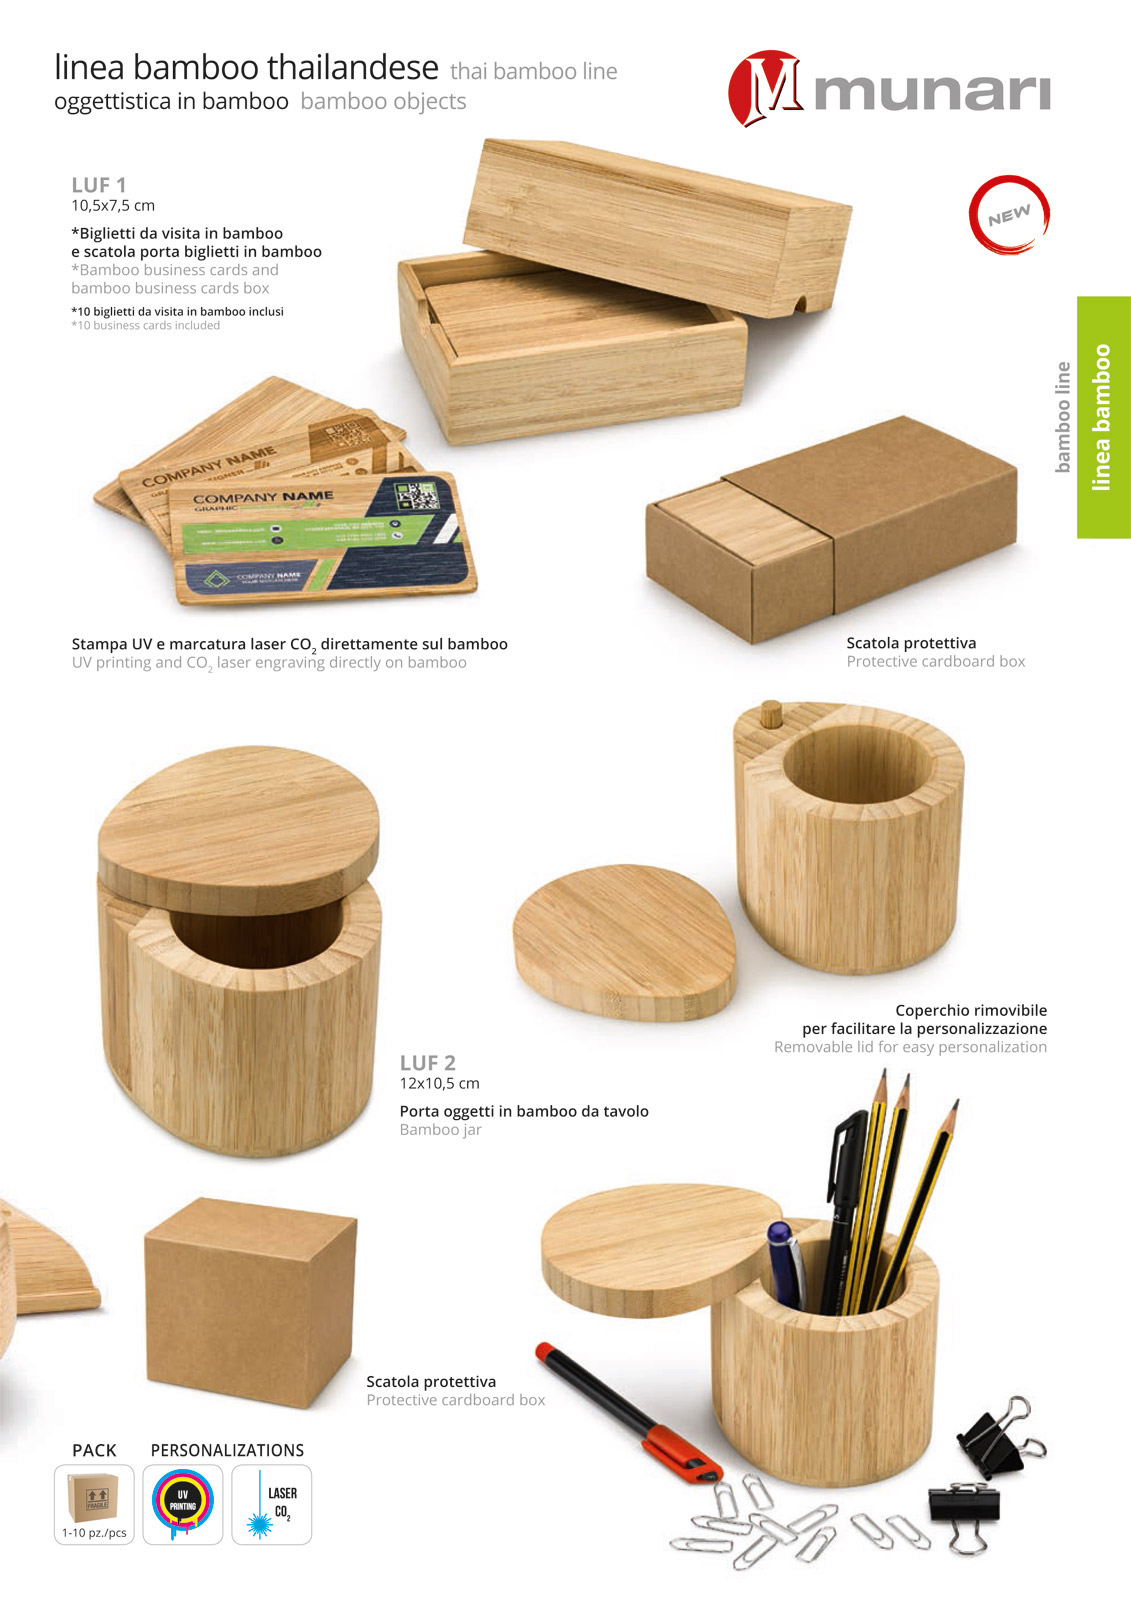 Bamboo business cards holder and bamboo cards LUF 1 - Thai Bamboo ...